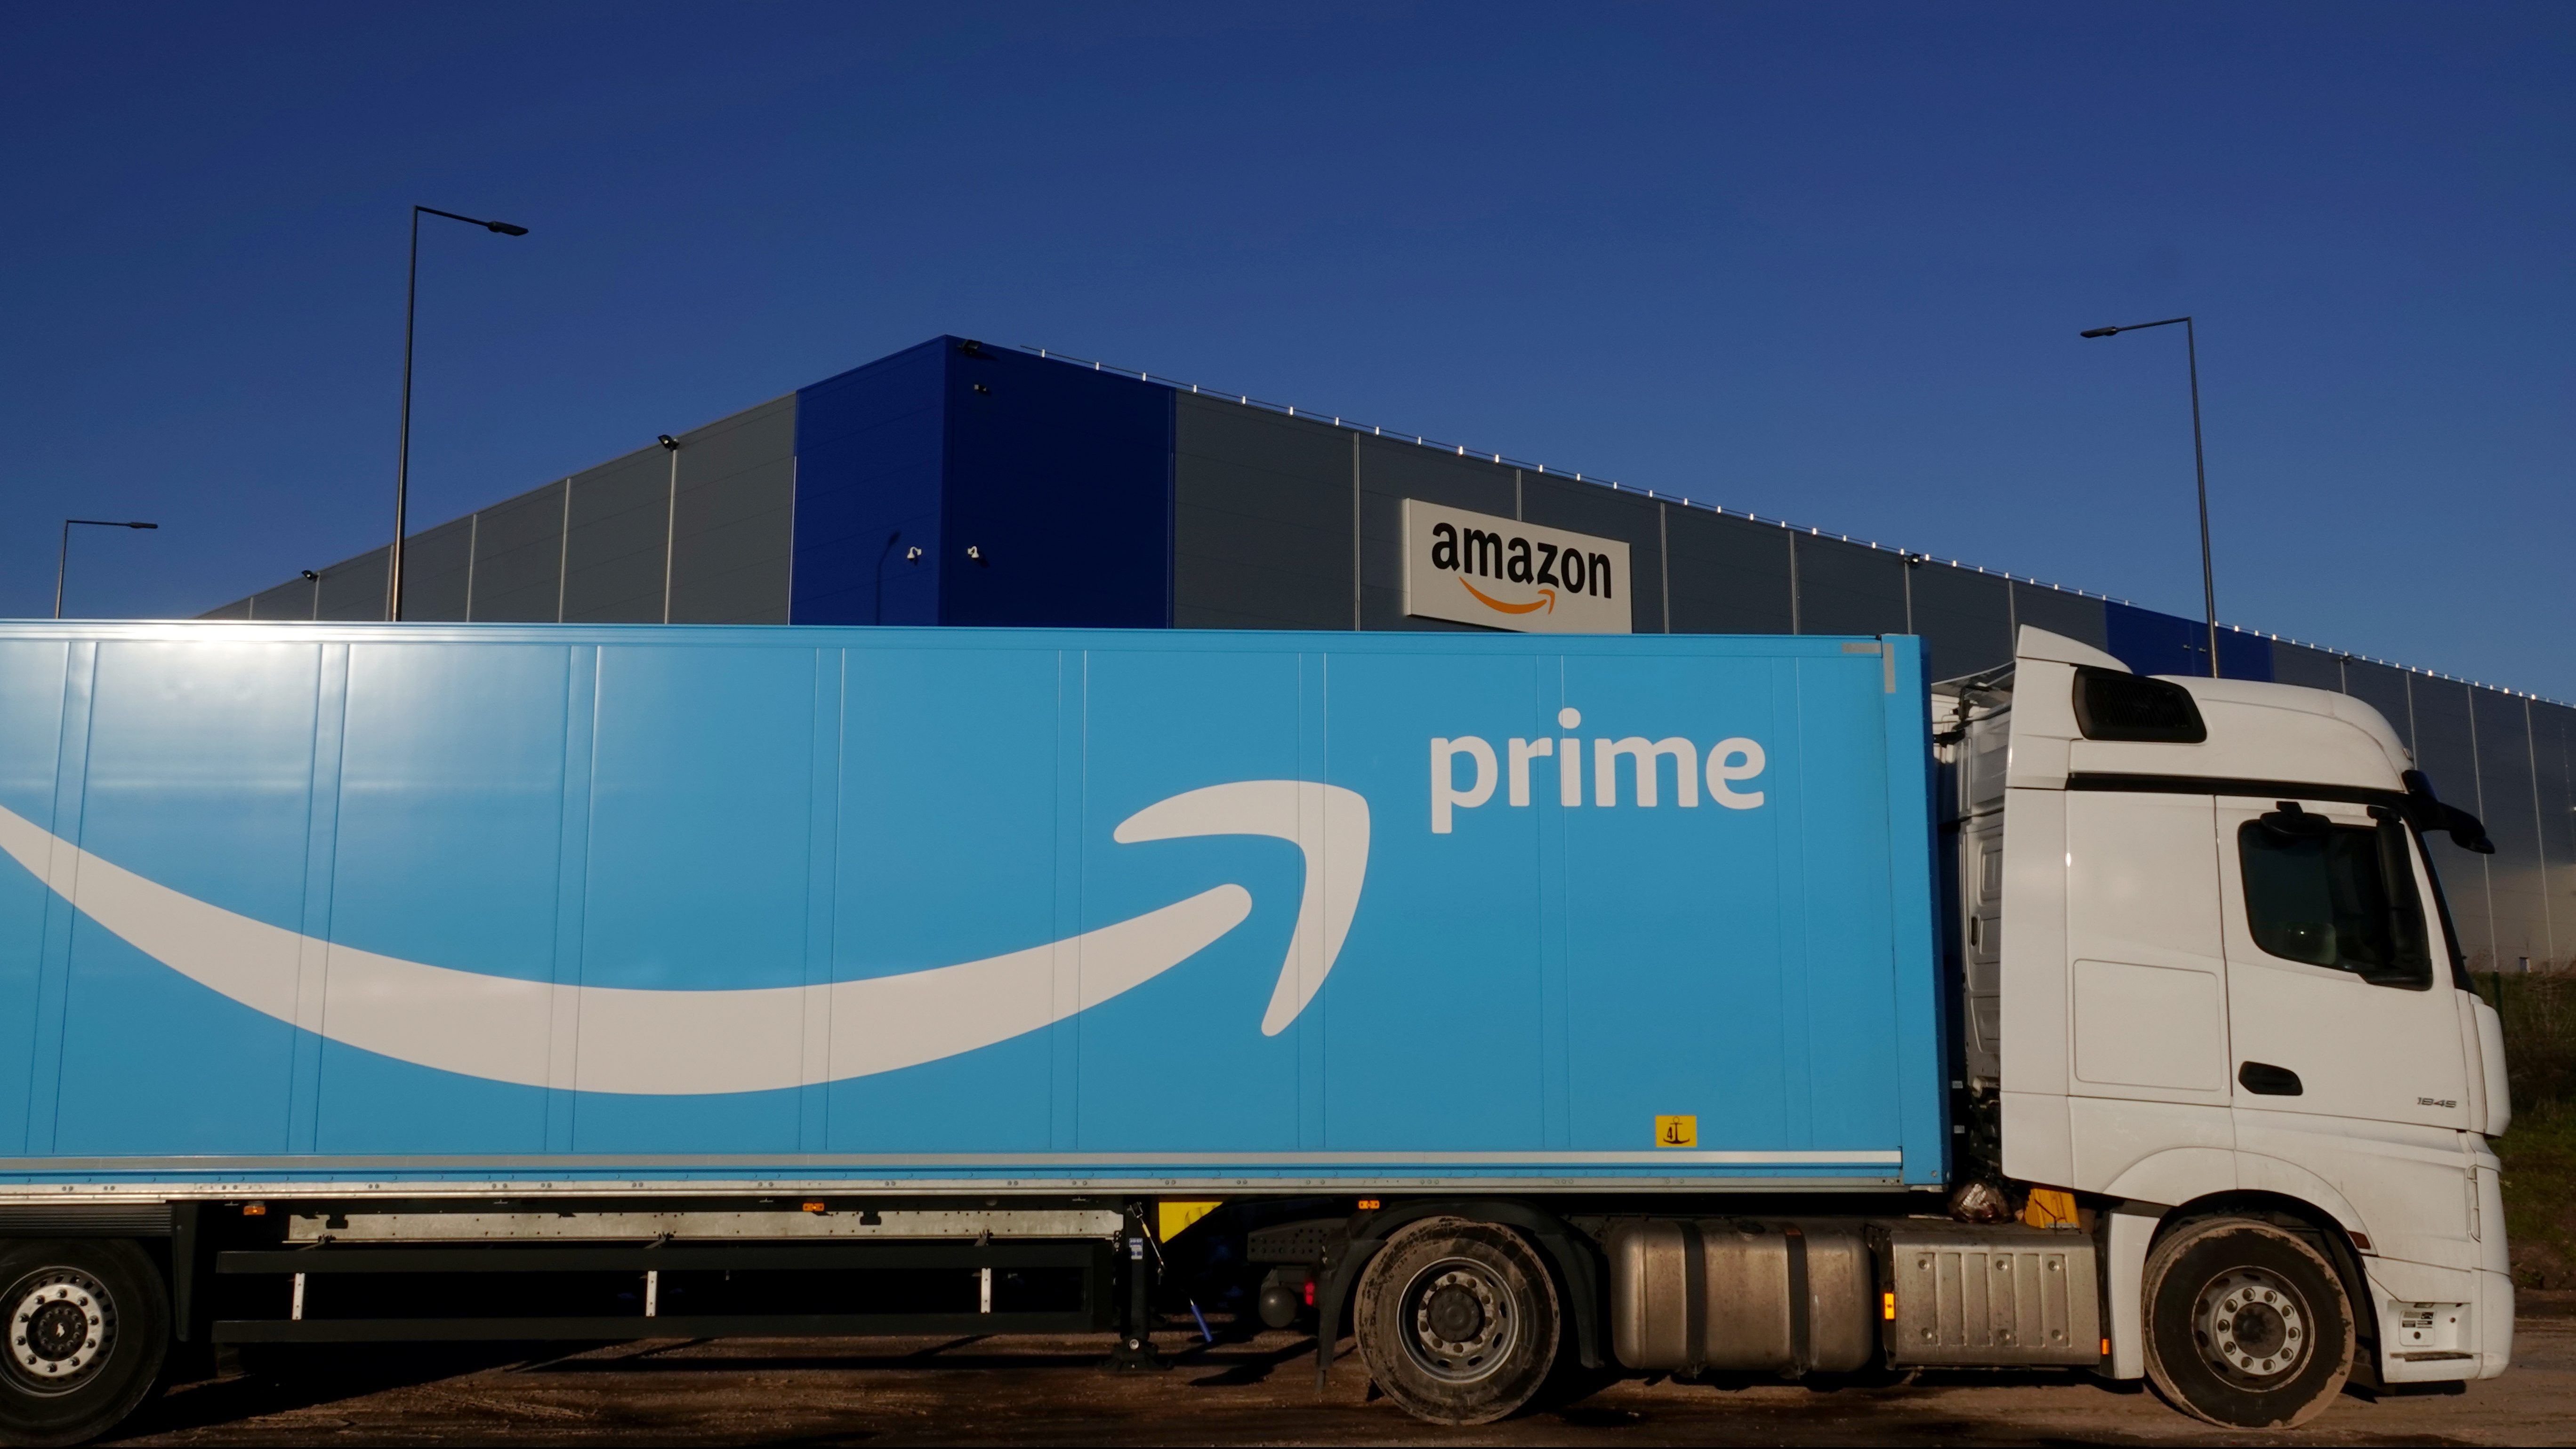 The logo of Amazon Prime Delivery is seen on the trailer of a truck